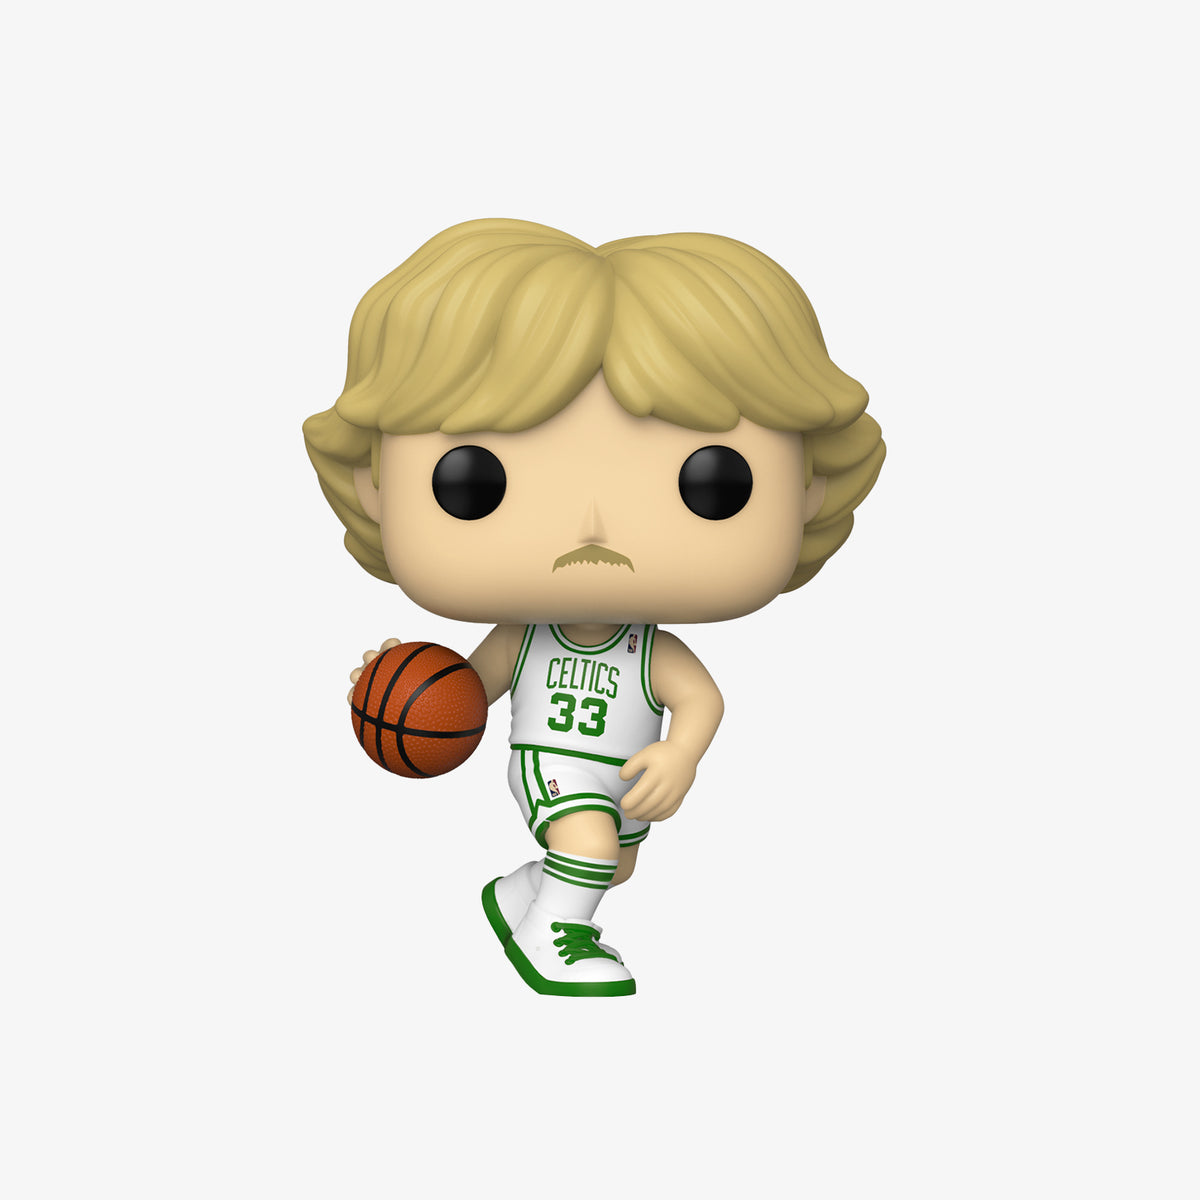 Larry Bird Boston Celtics NBA Legends Pop Figure - White